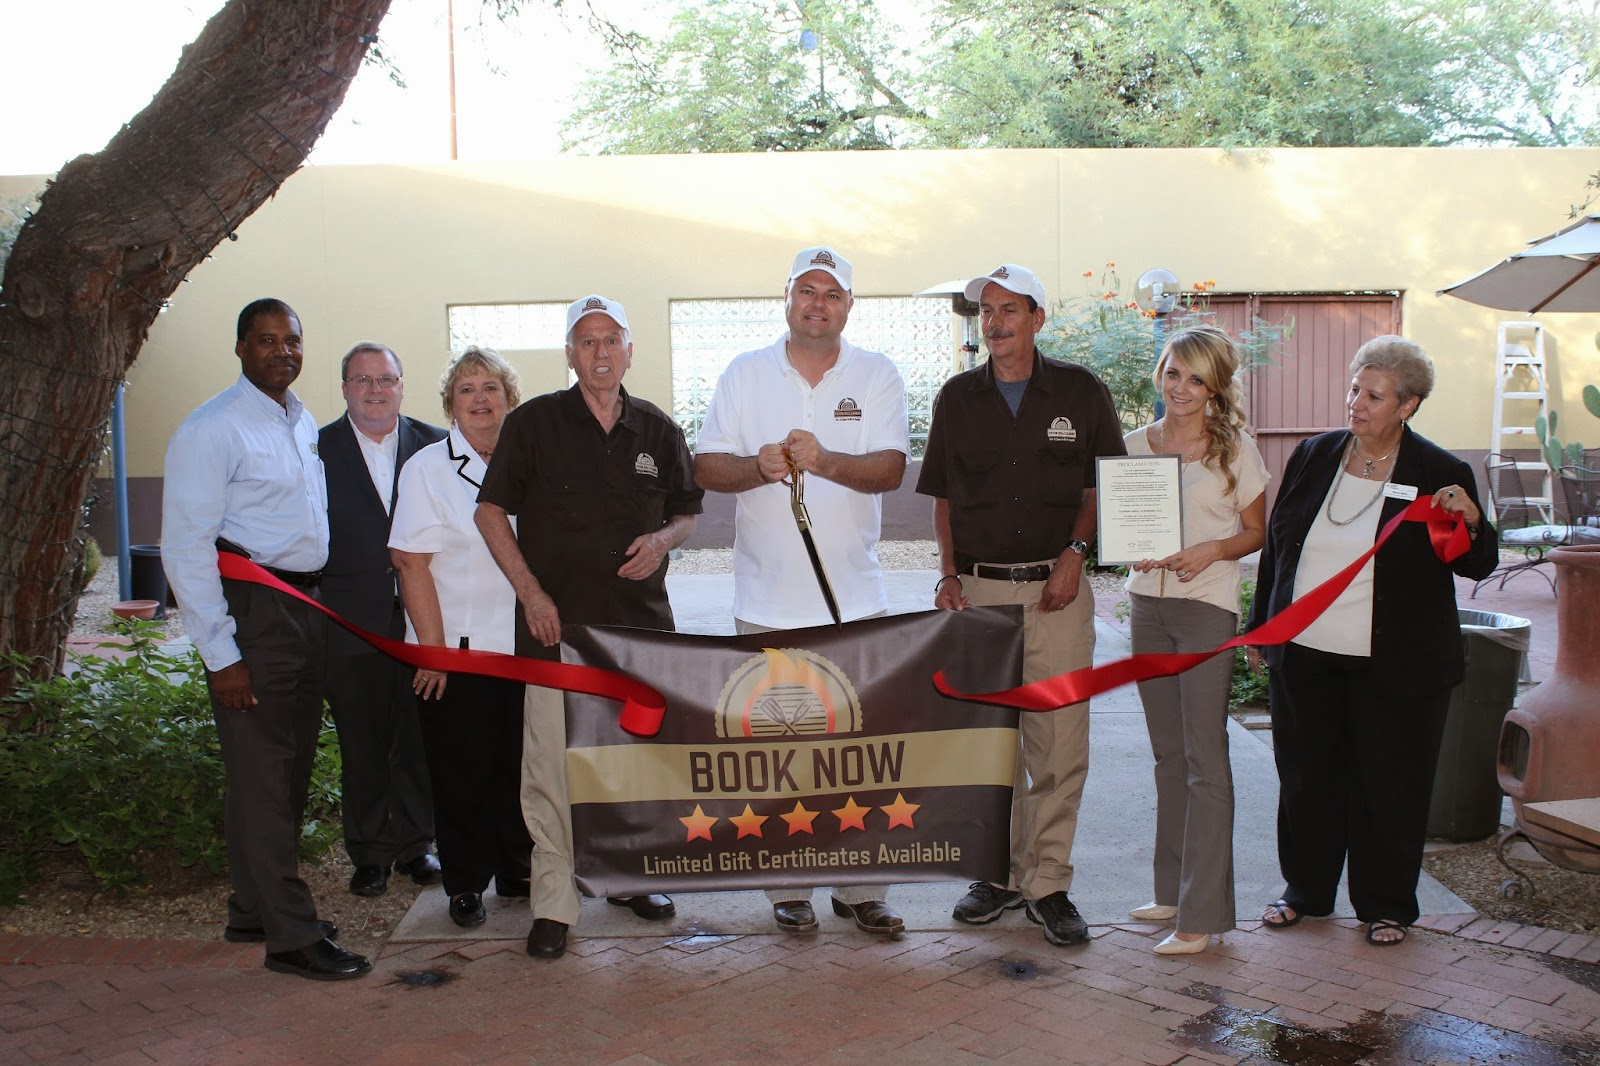 Tucson Grill Cleaning LLC, winners of the SAHBA Home Show's Most Innovative New Product, are proud to announce one full year of successful business!  Thanks to our residential and commercial clients' overwhelming response, we are humbly projecting a prosperous end of 2014, and great 2015.  Thank you Tucson!